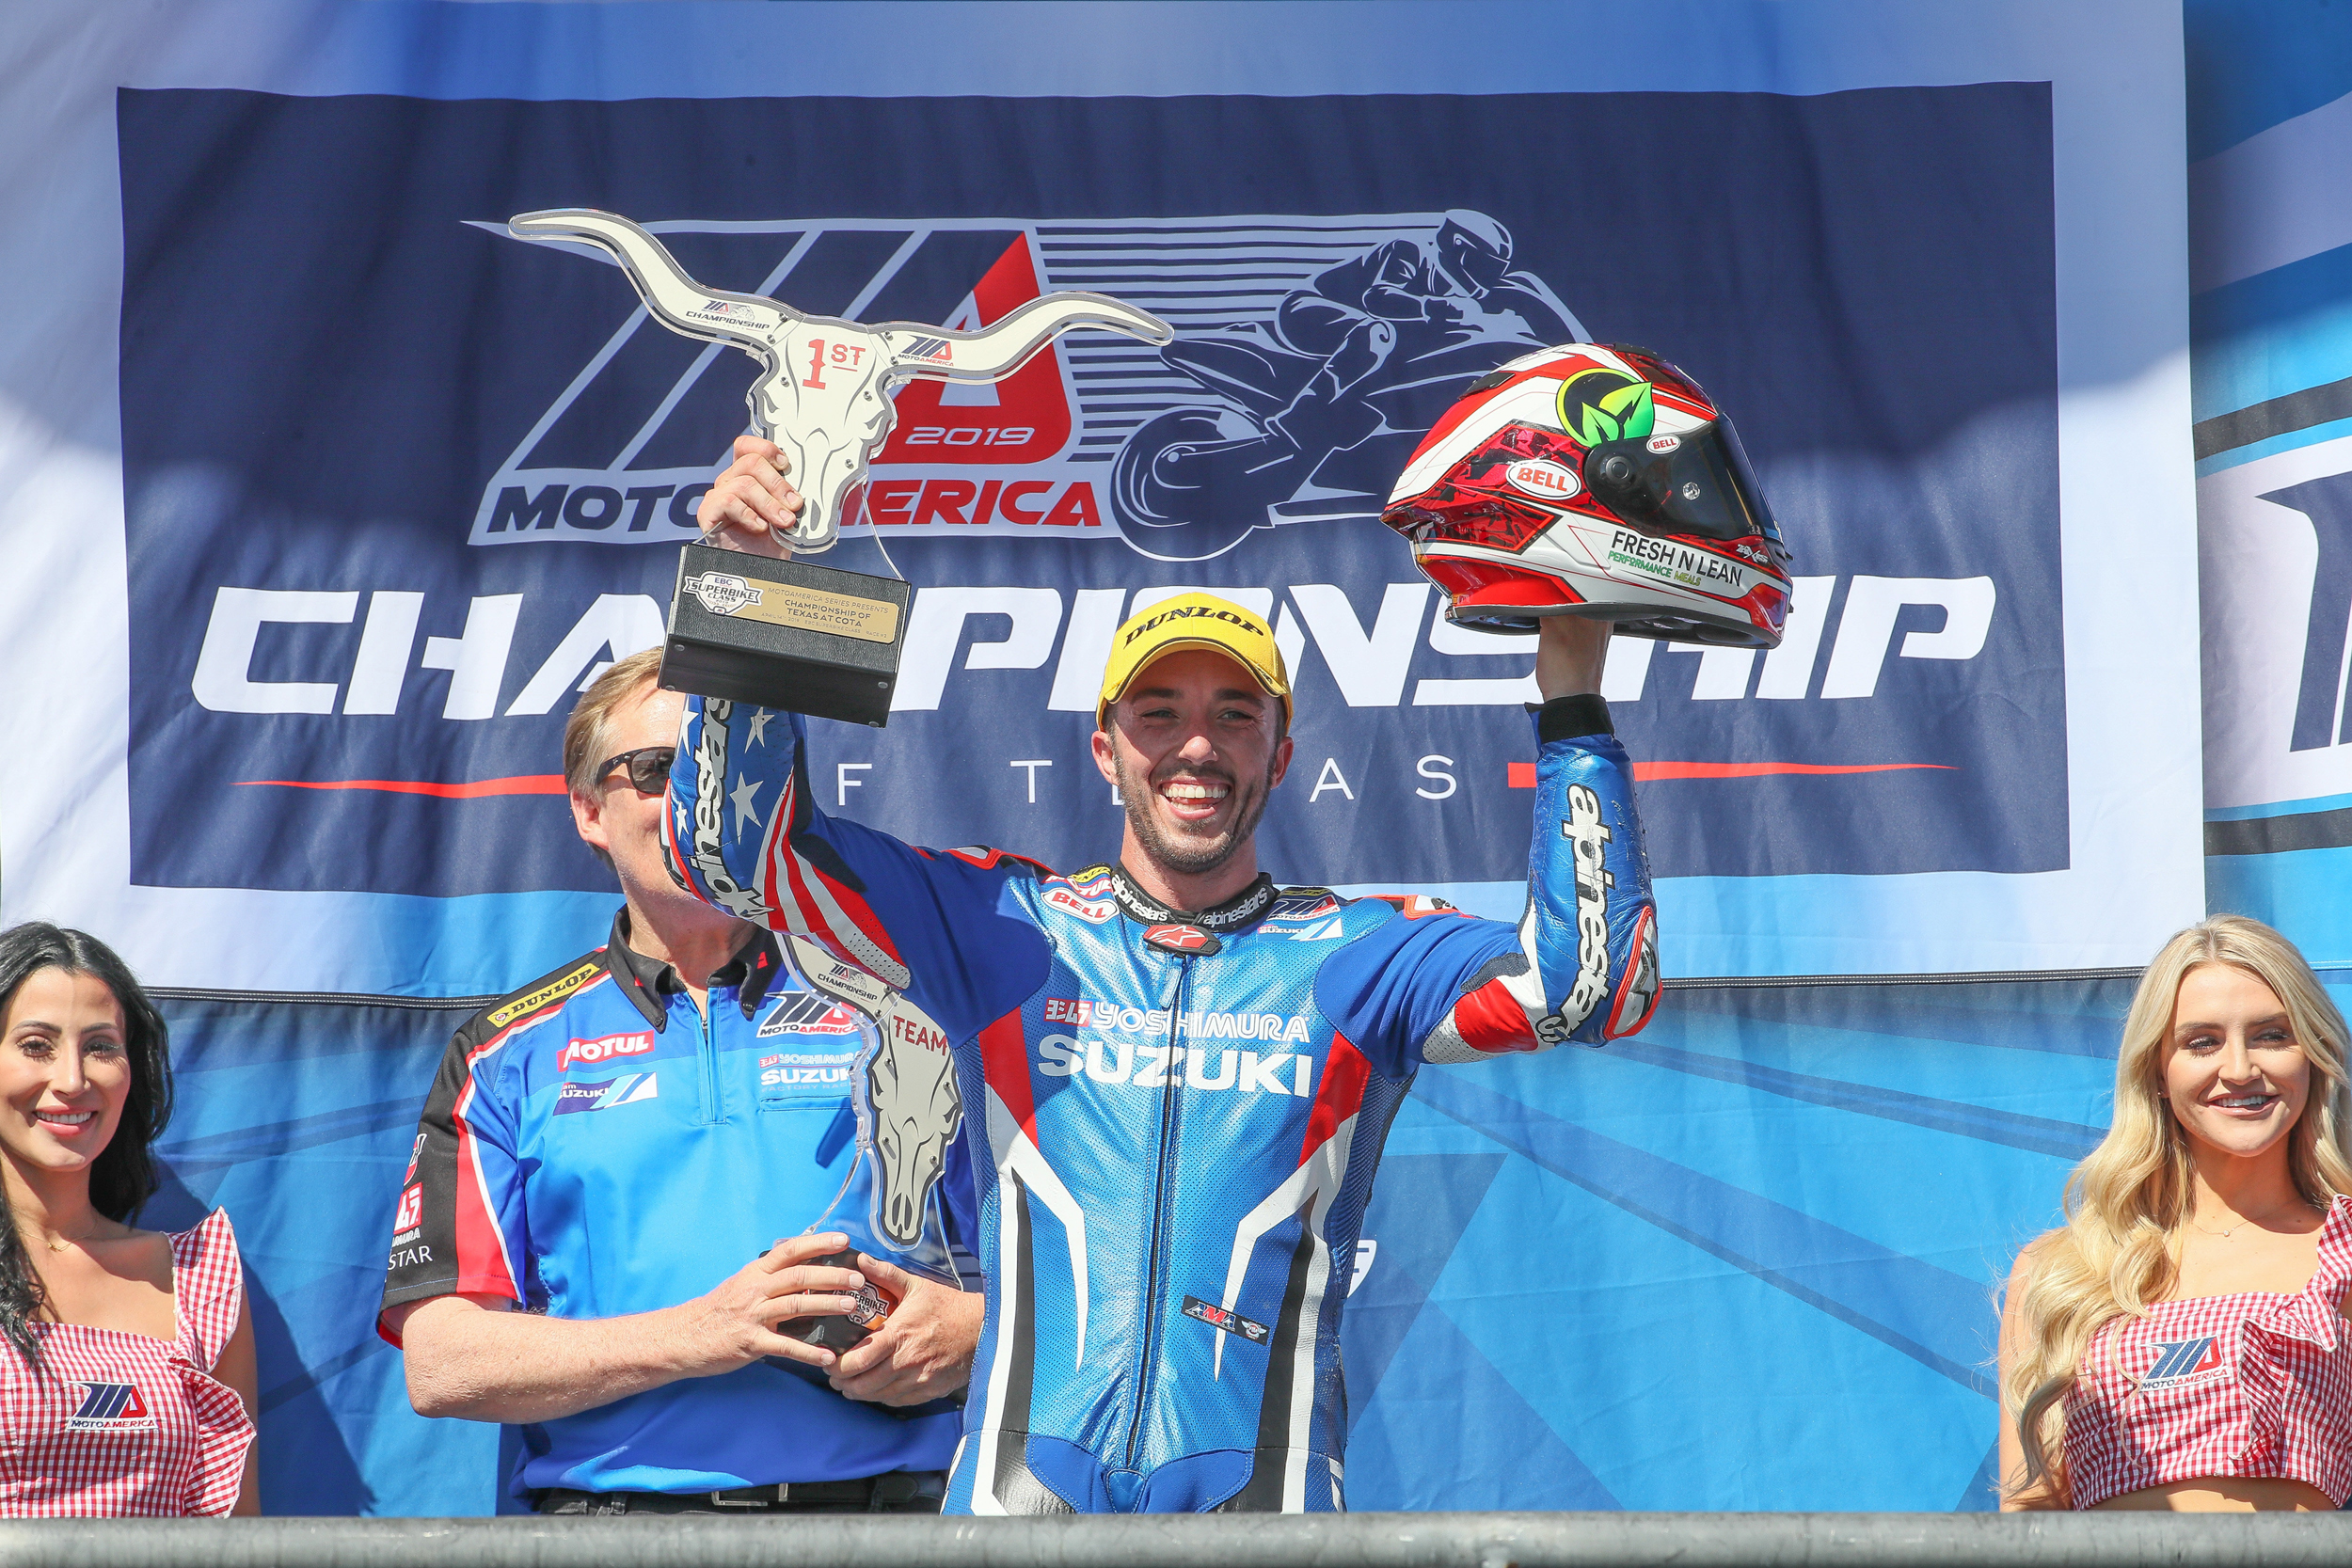 Josh Herrin grabs his first win of the 2019 MotoAmerica season with Suzuki [6]